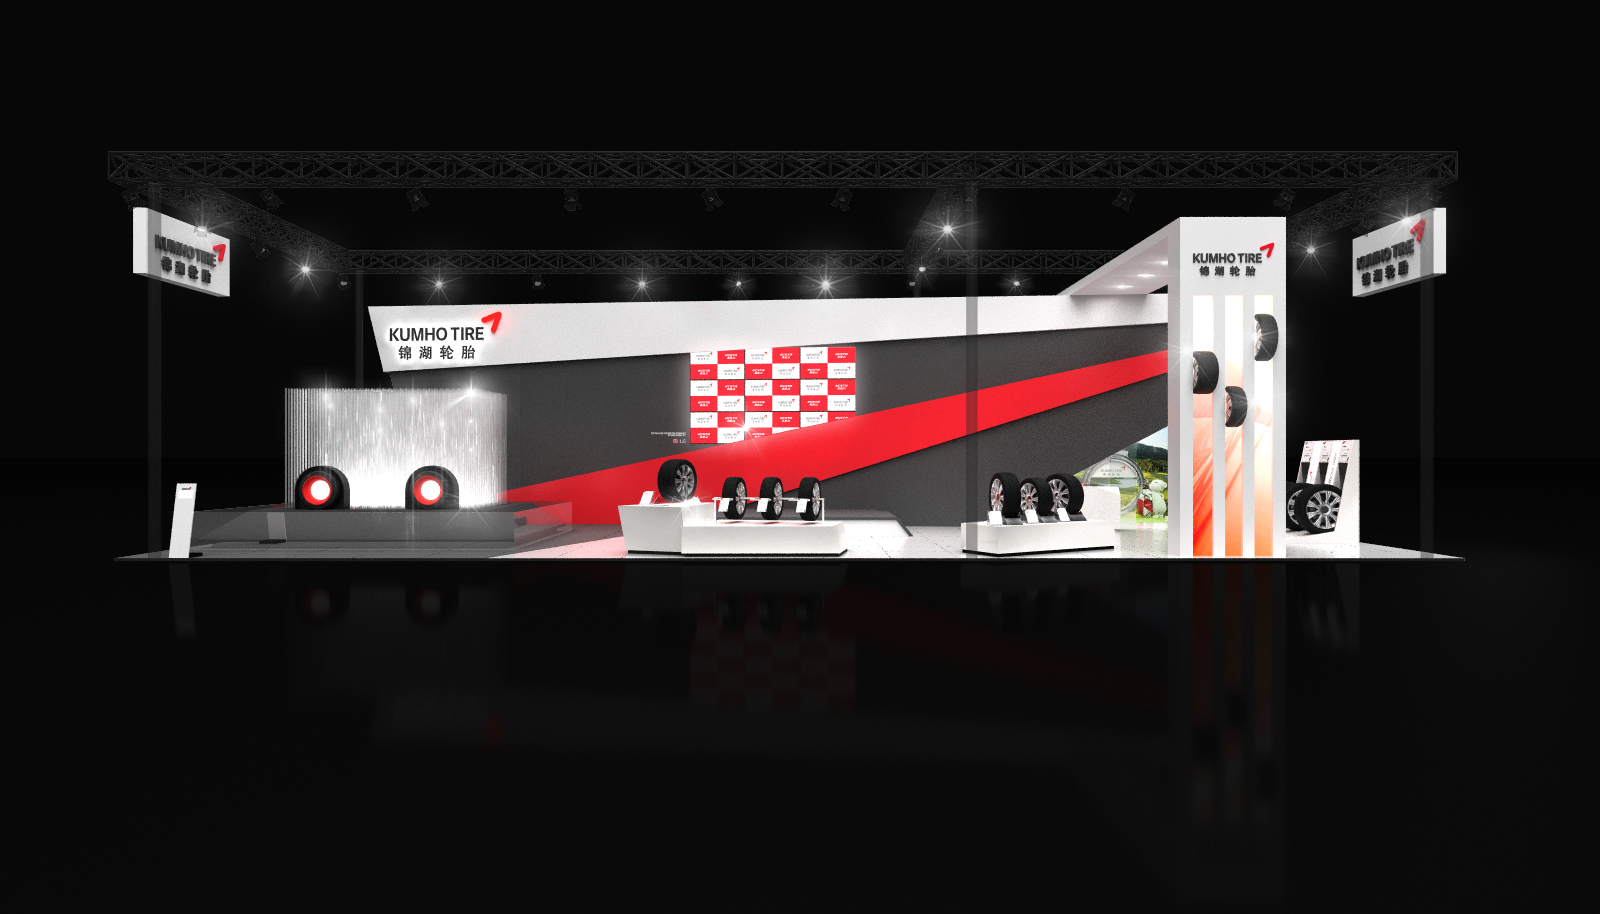 A virtual render of what the Kumho Tire booth will look like at the Shanghai Auto Show.